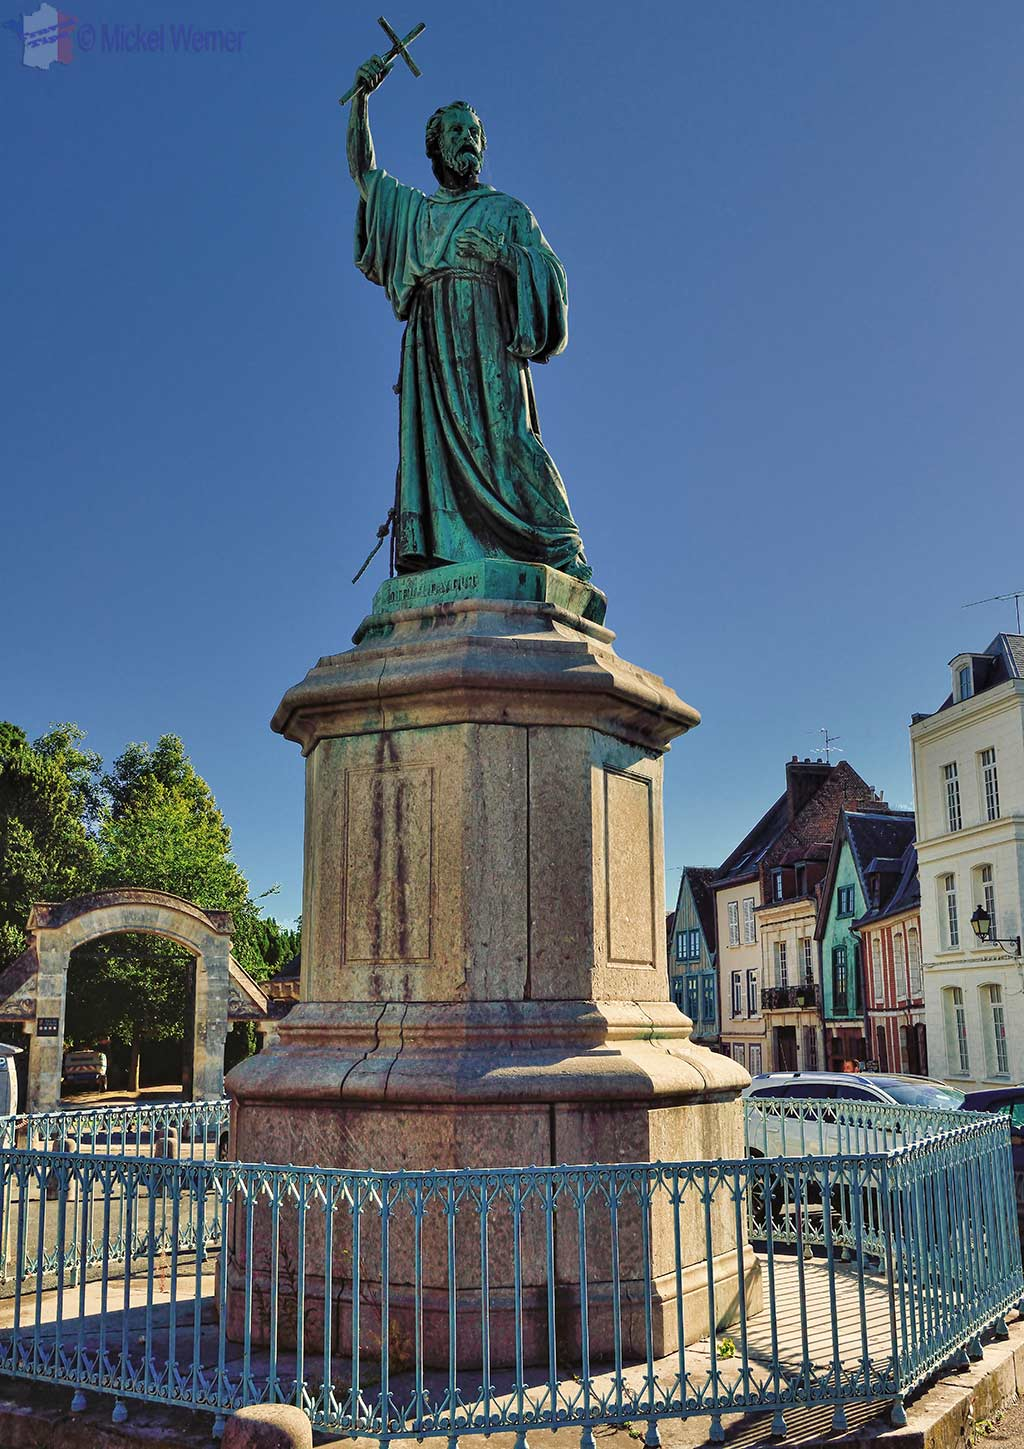 Pierre l'Ermite (Peter the Hermit) statue behind the Amiens cathedral